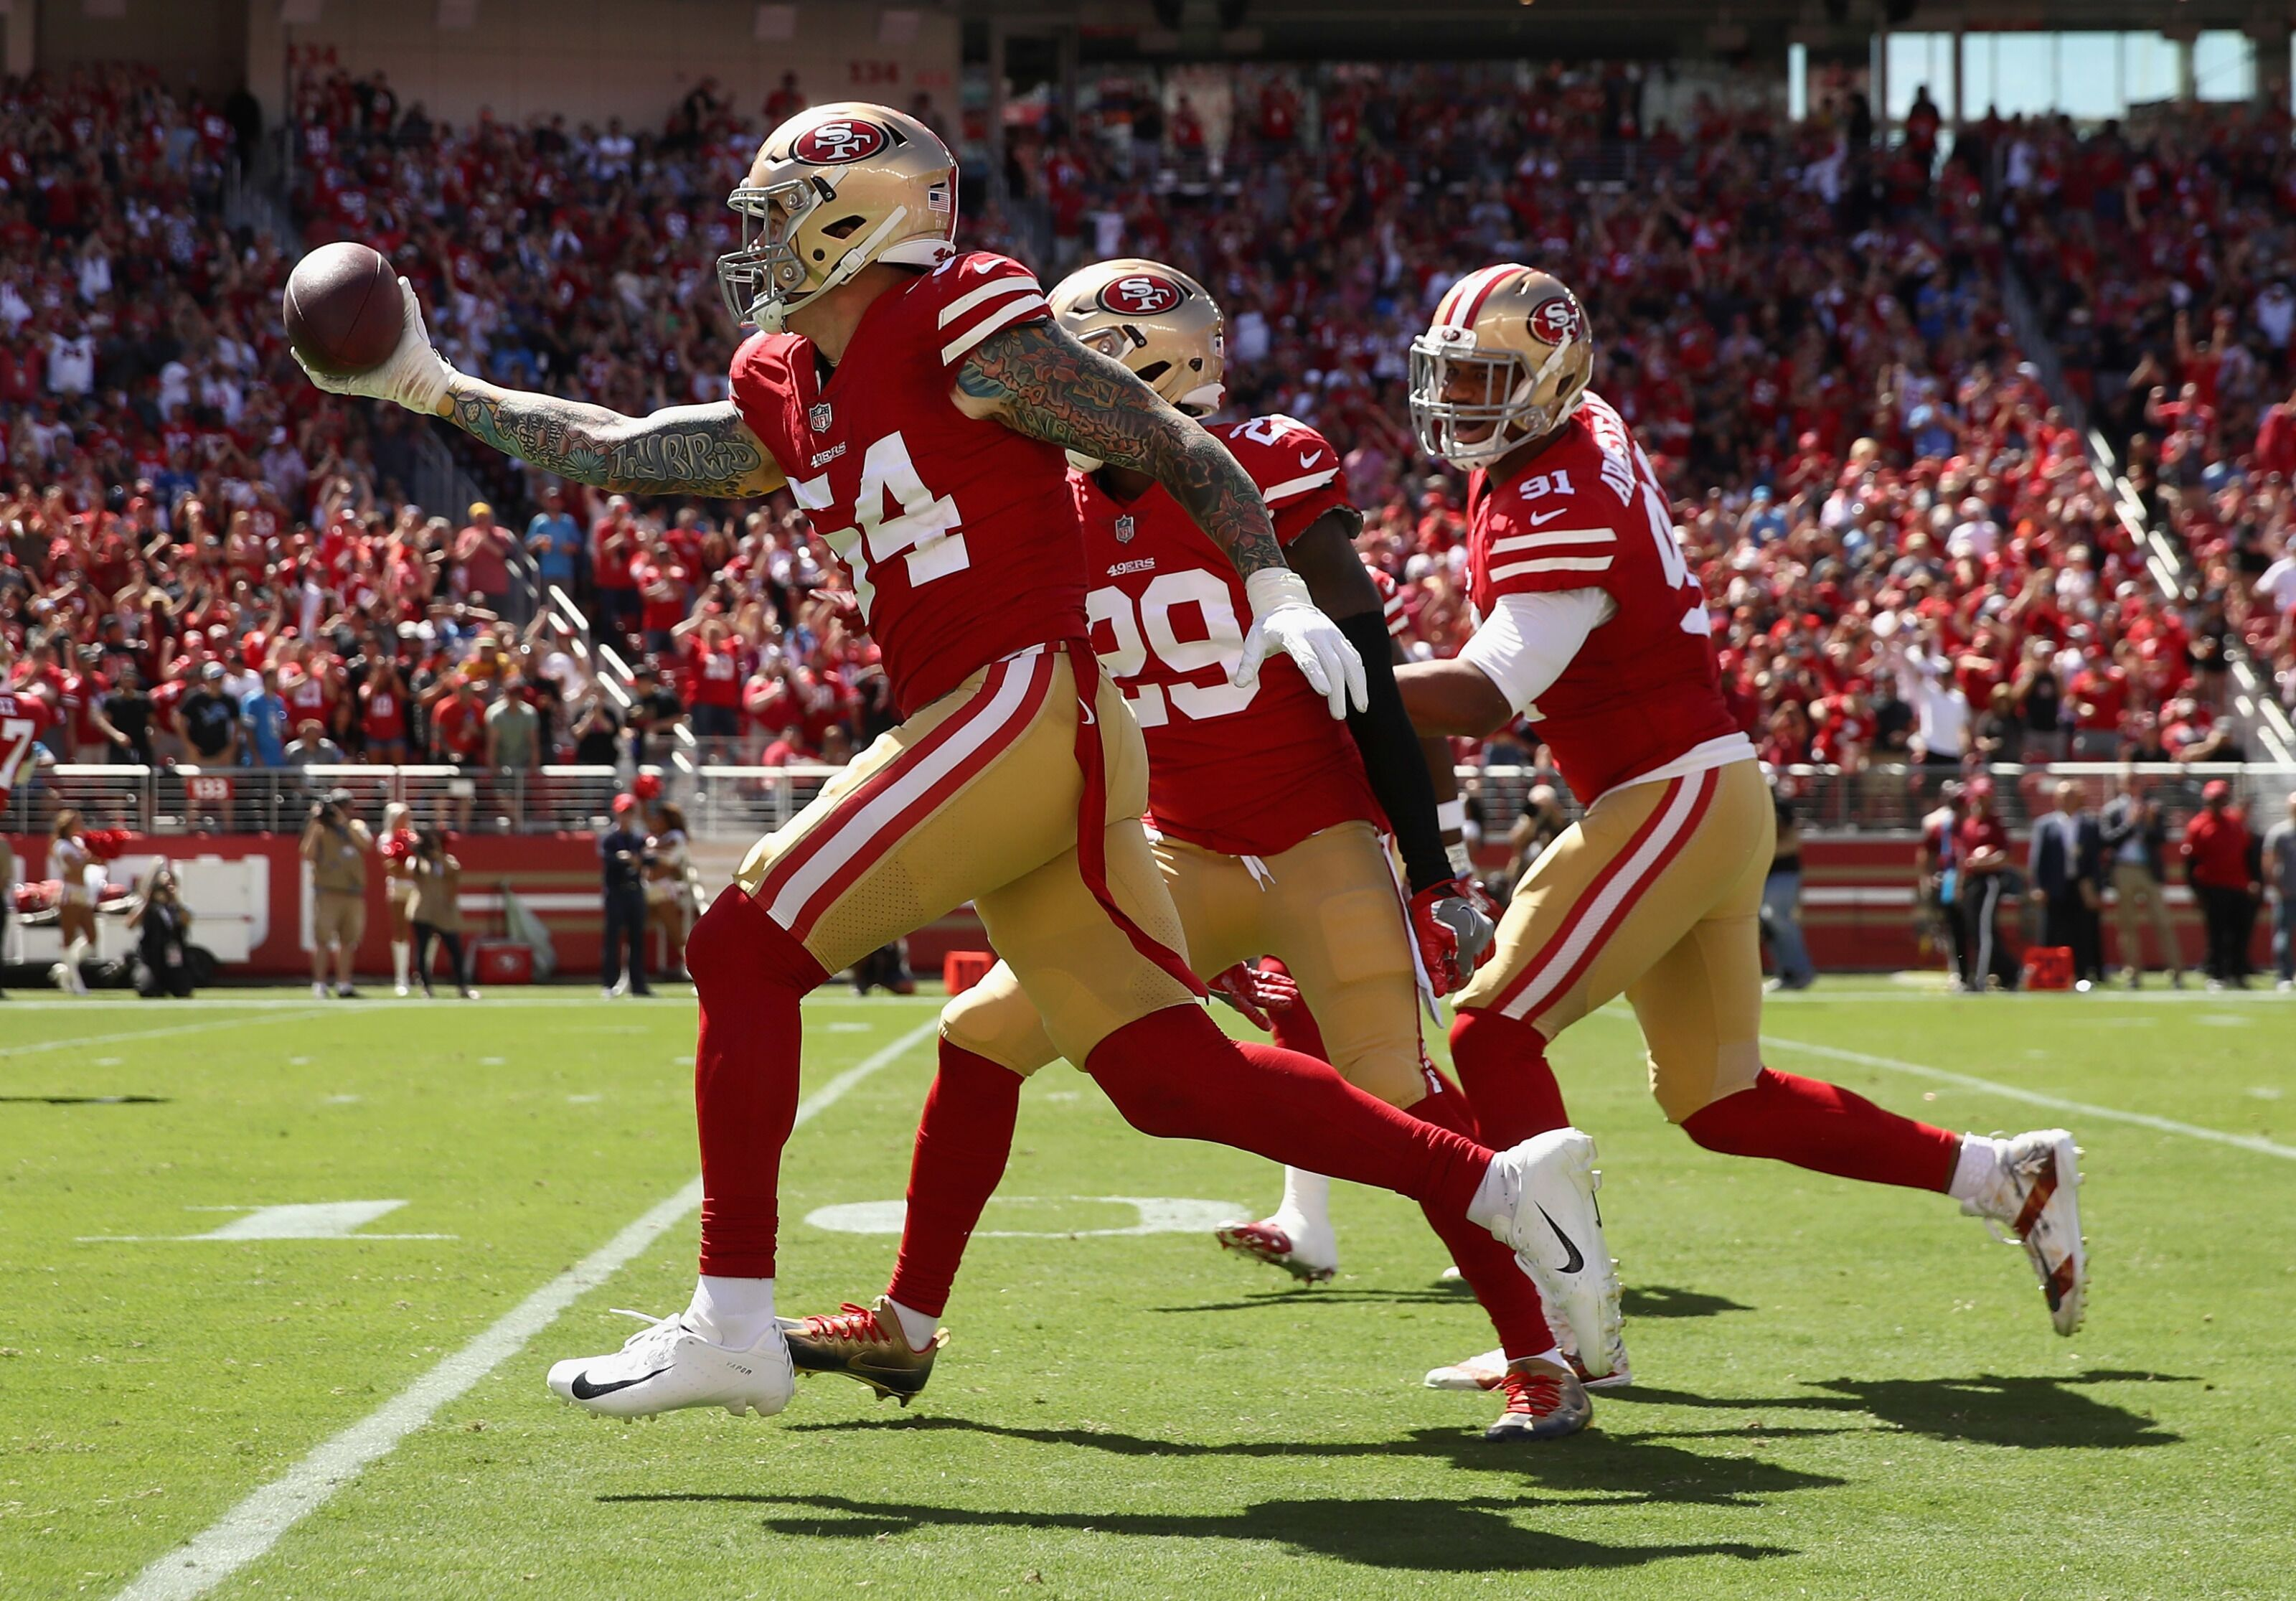 fff23c7668a San Francisco 49ers  Turnovers lead to sloppy loss to Arizona Cardinals